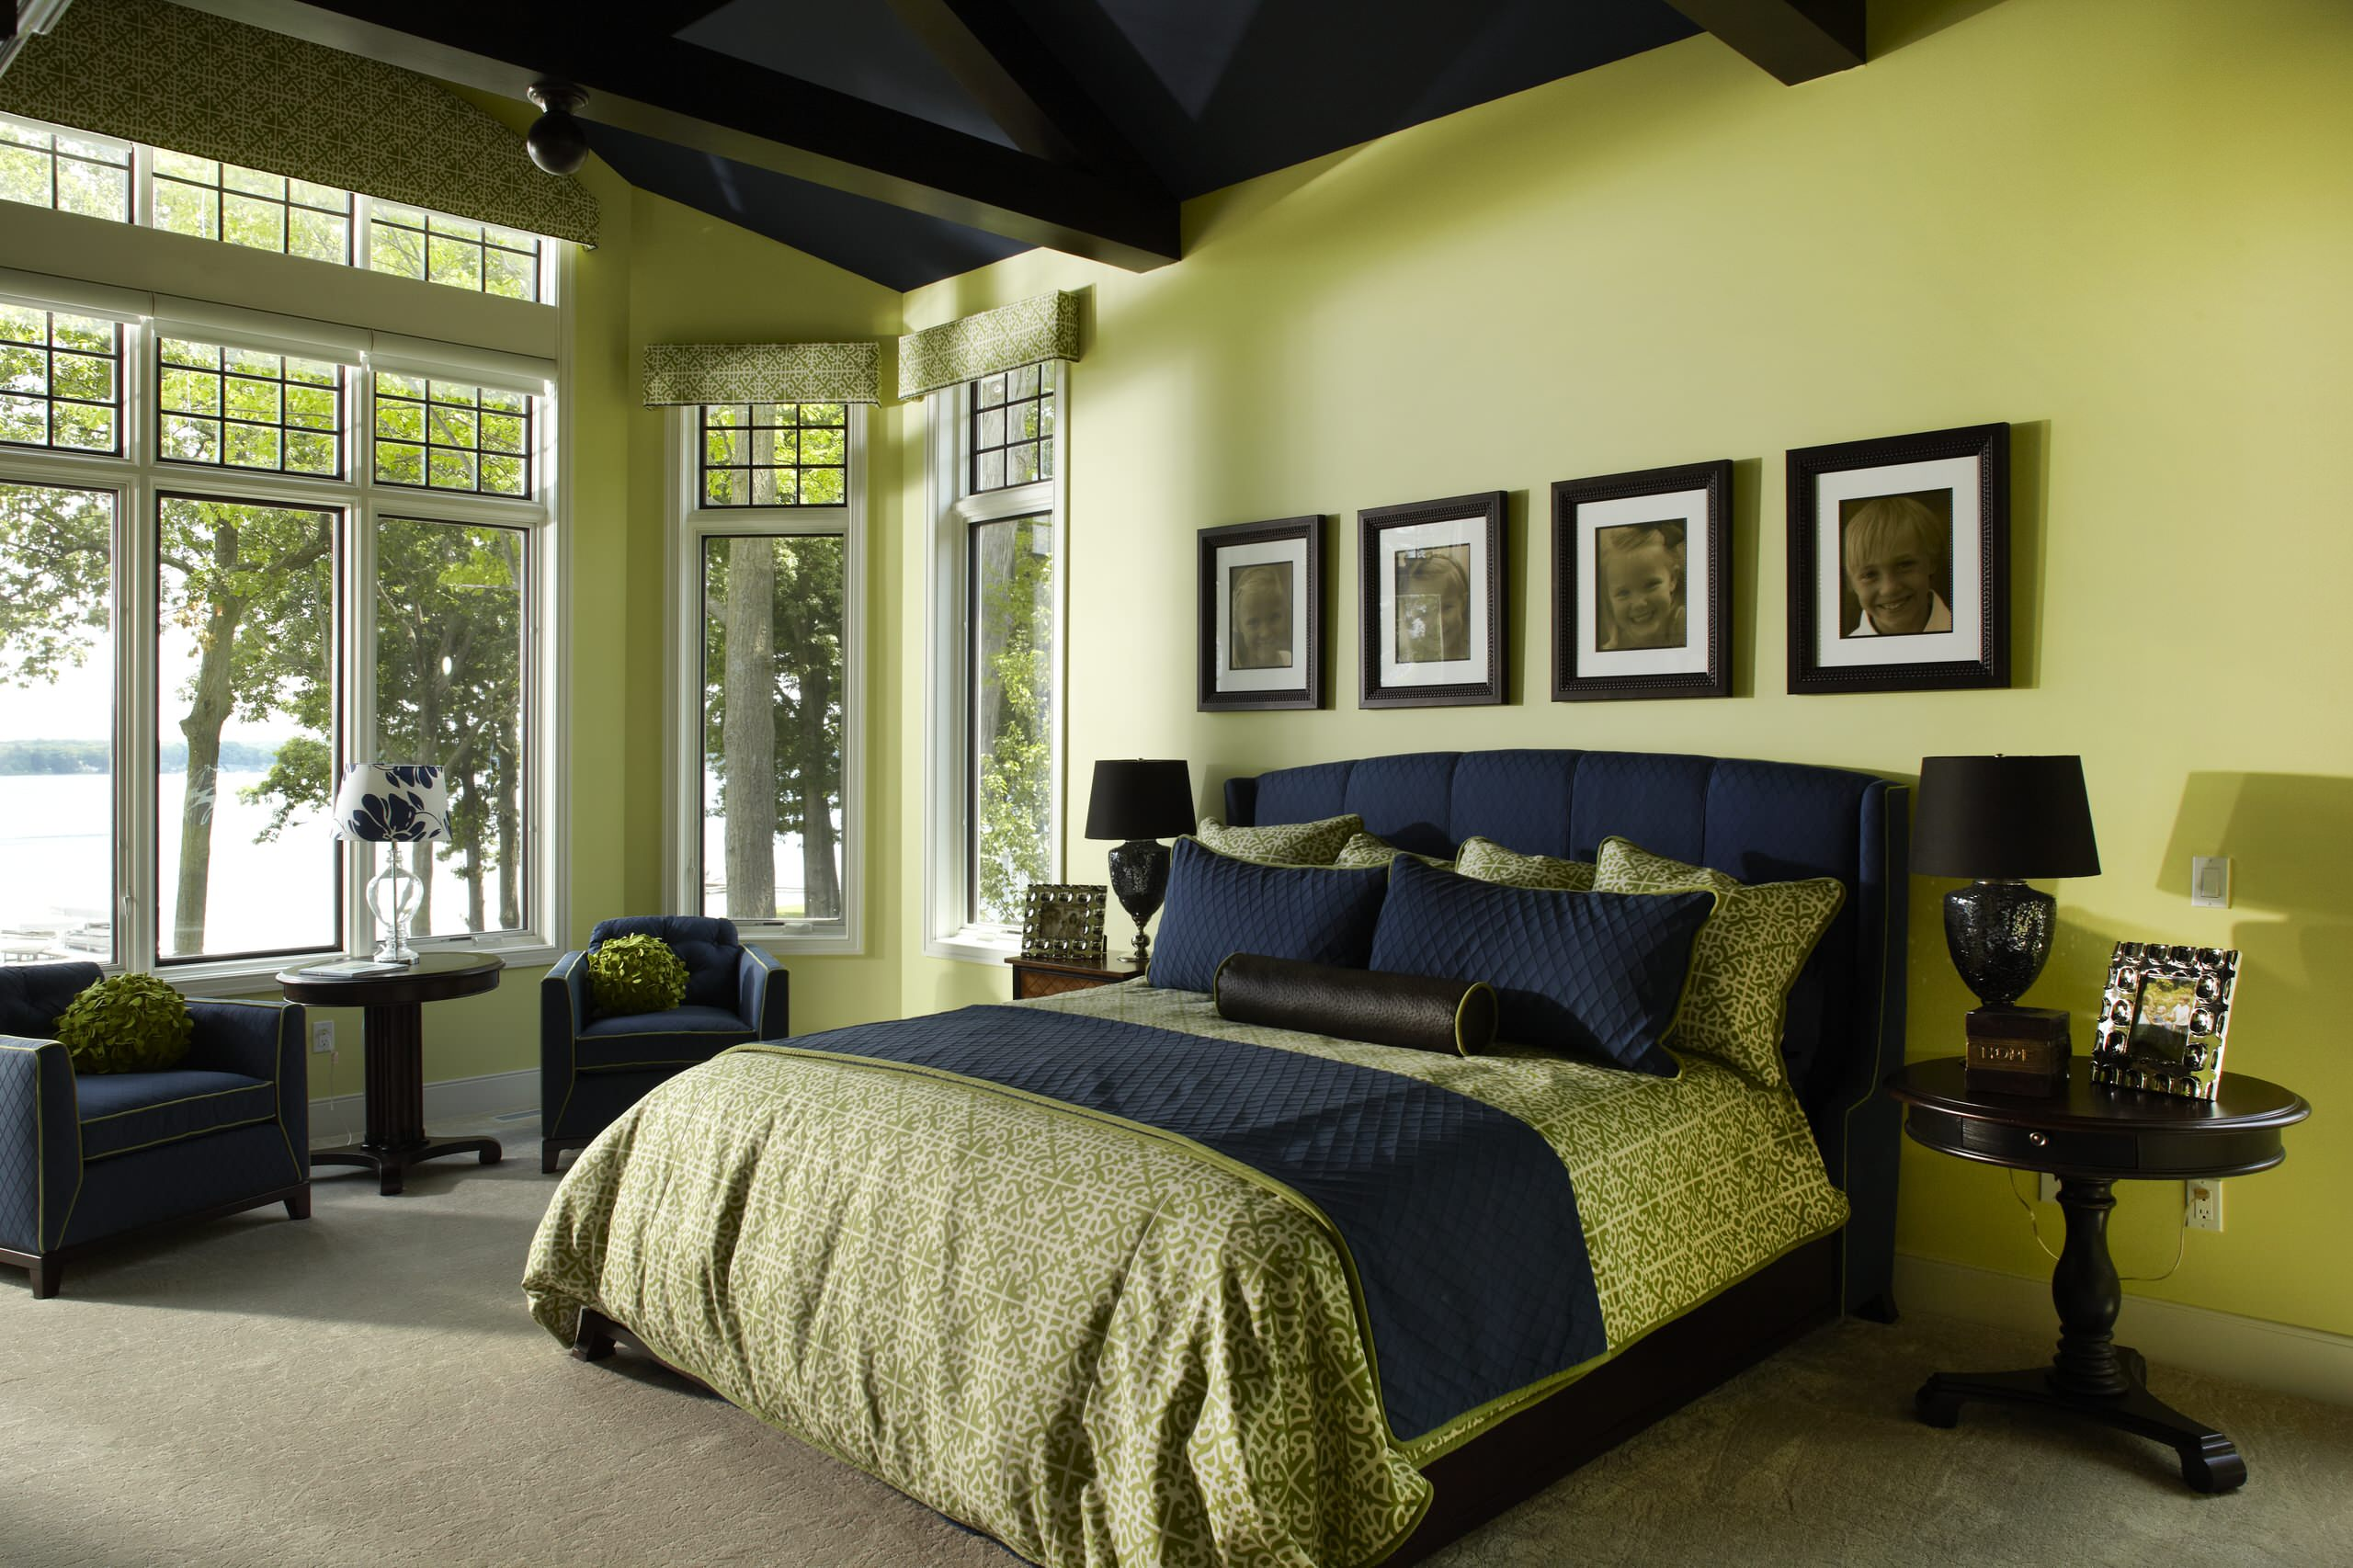 Hgtv can help you find the right shade for your green bedroom. 75 Beautiful Green Bedroom Pictures Ideas October 2021 Houzz